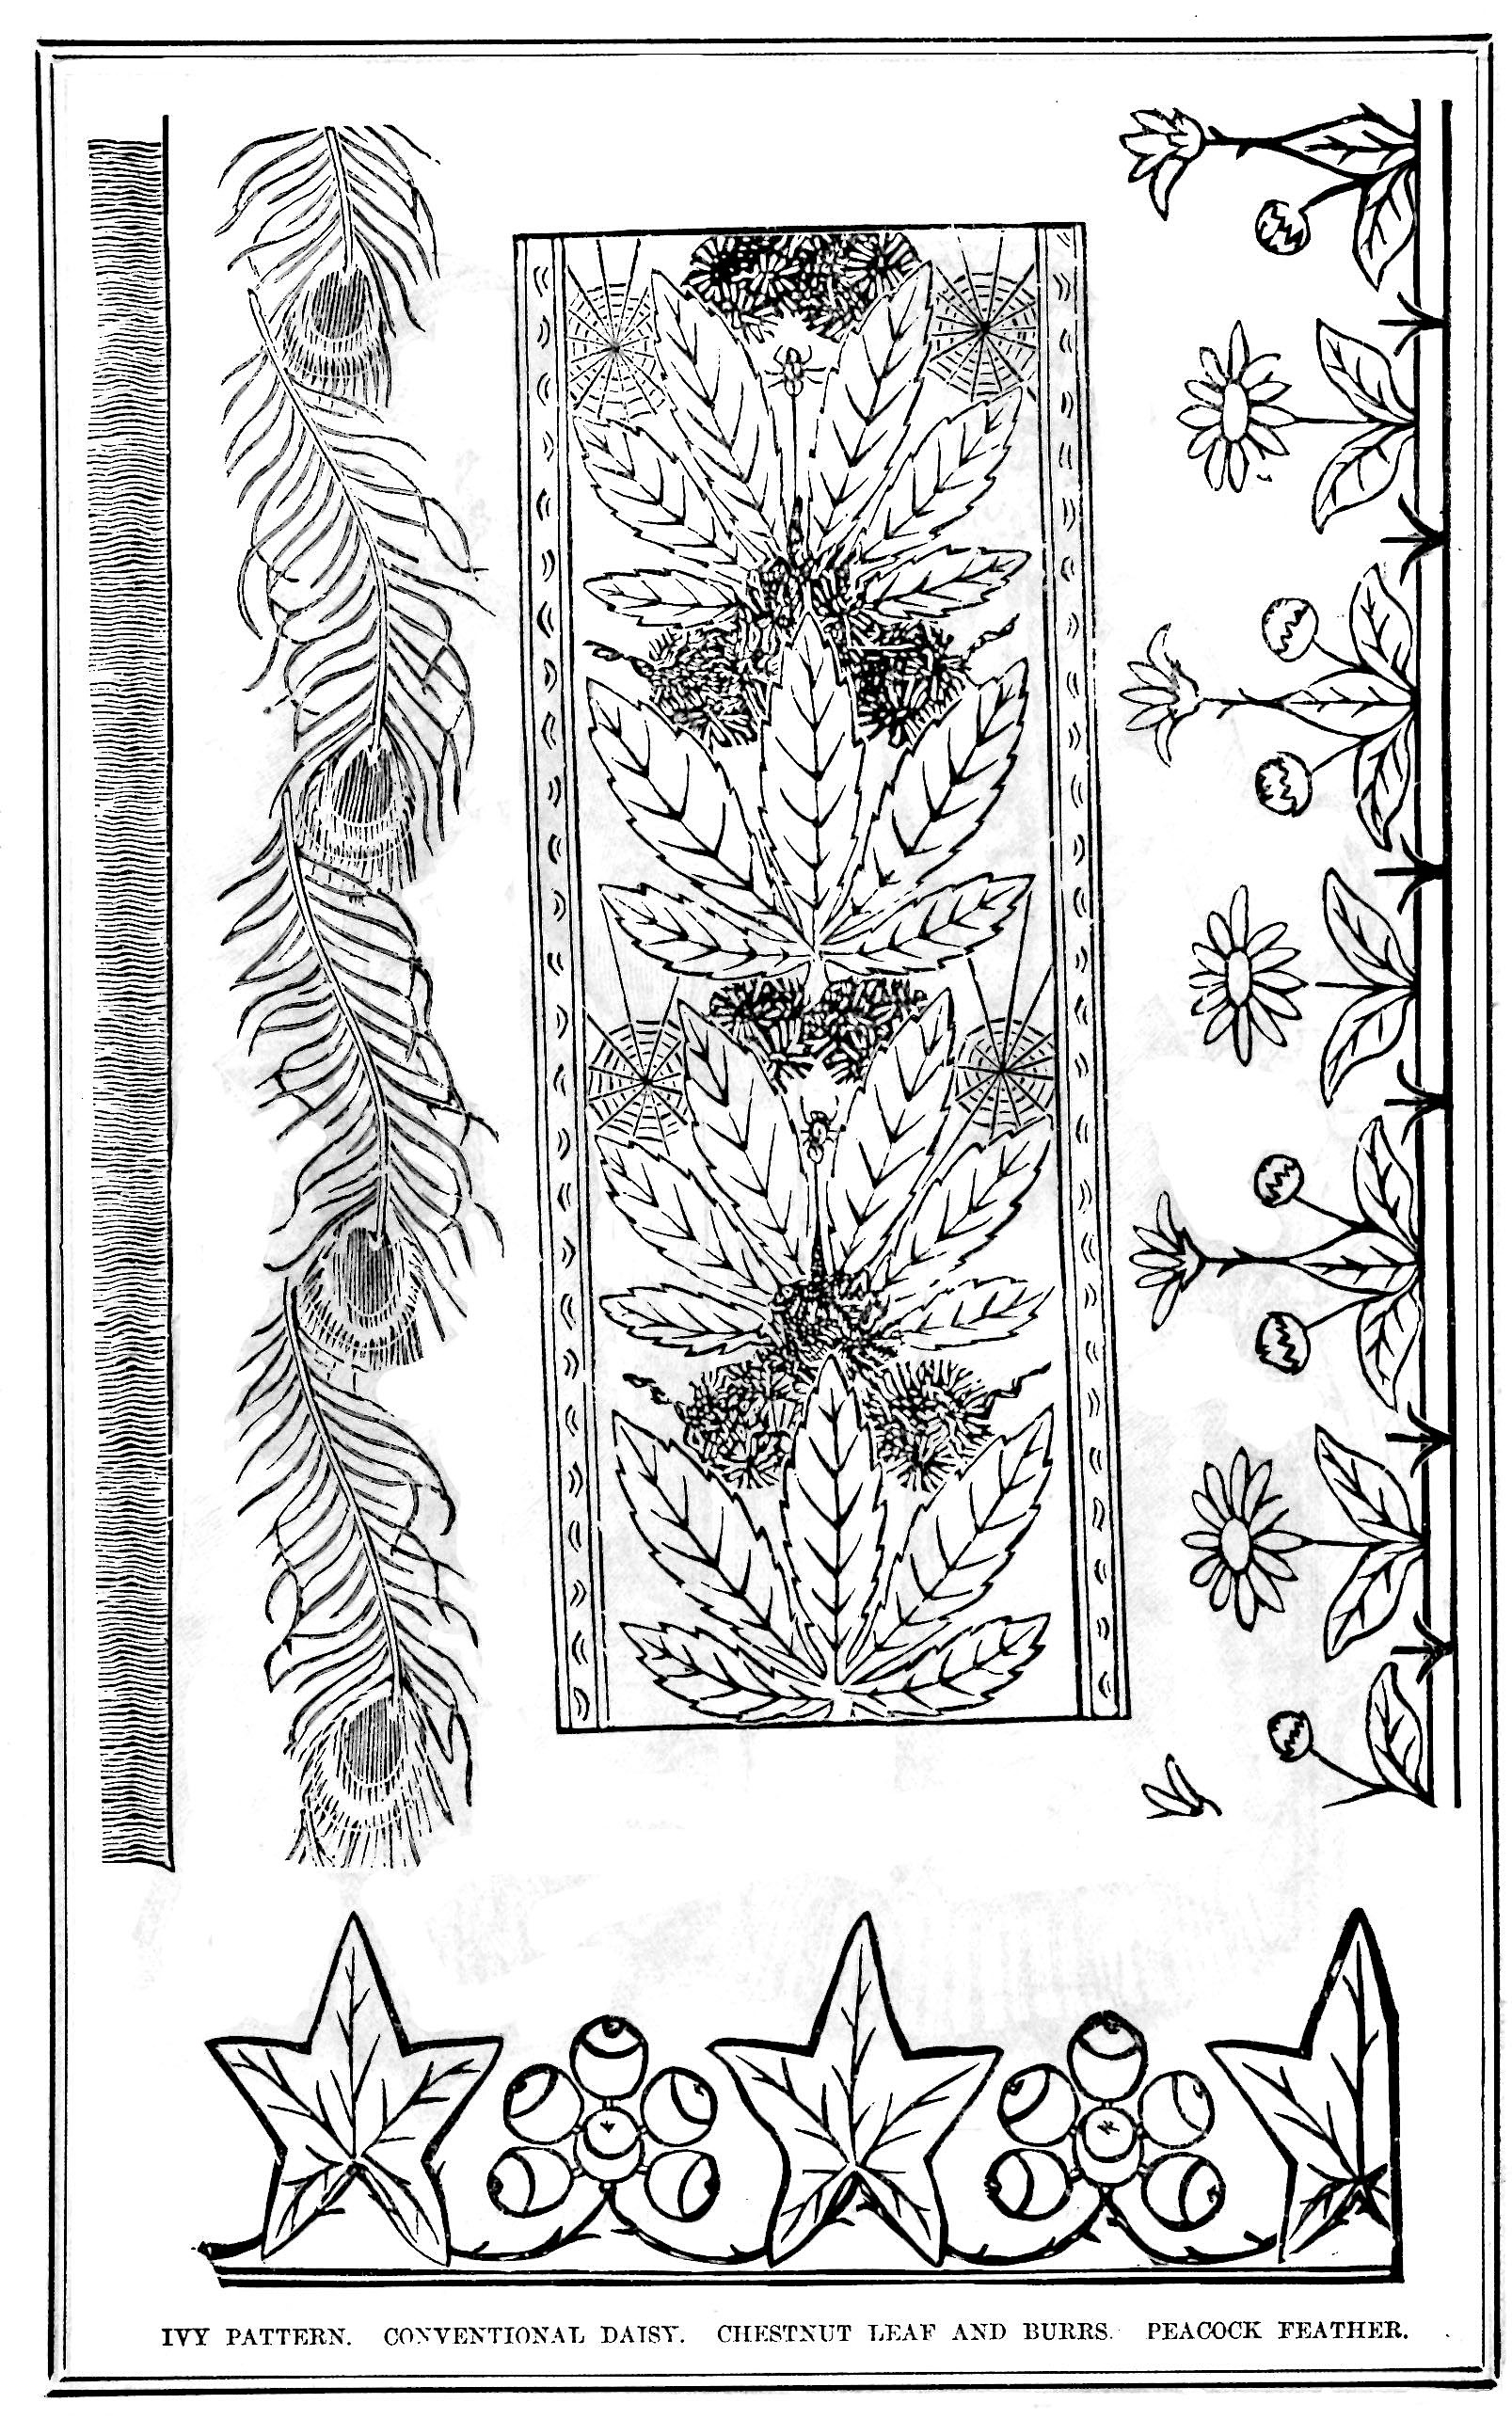 Peacock Embroidery Patterns Victorian Era Embroidery Patterns Vintage Crafts And More